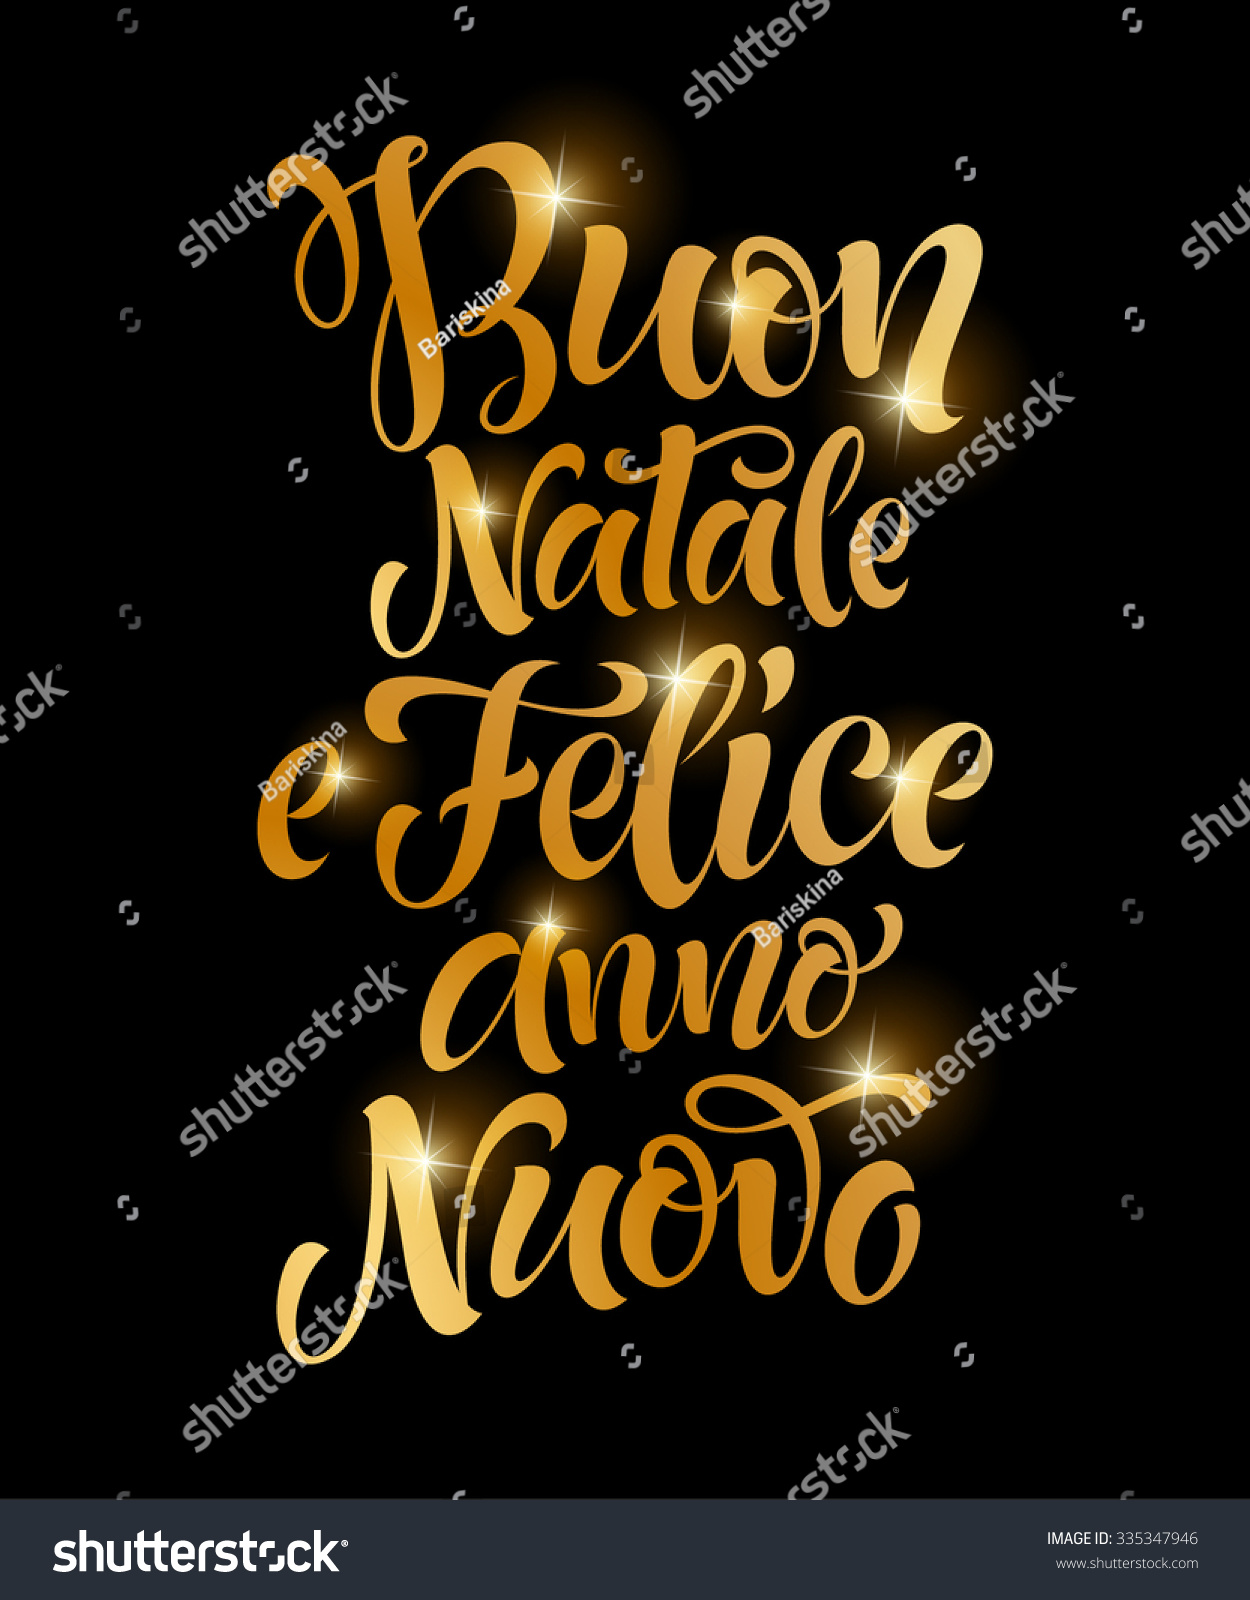 Merry christmas happy new year italian stock vector 335347946 merry christmas and happy new year italian golden text buon natale e felice anno kristyandbryce Images